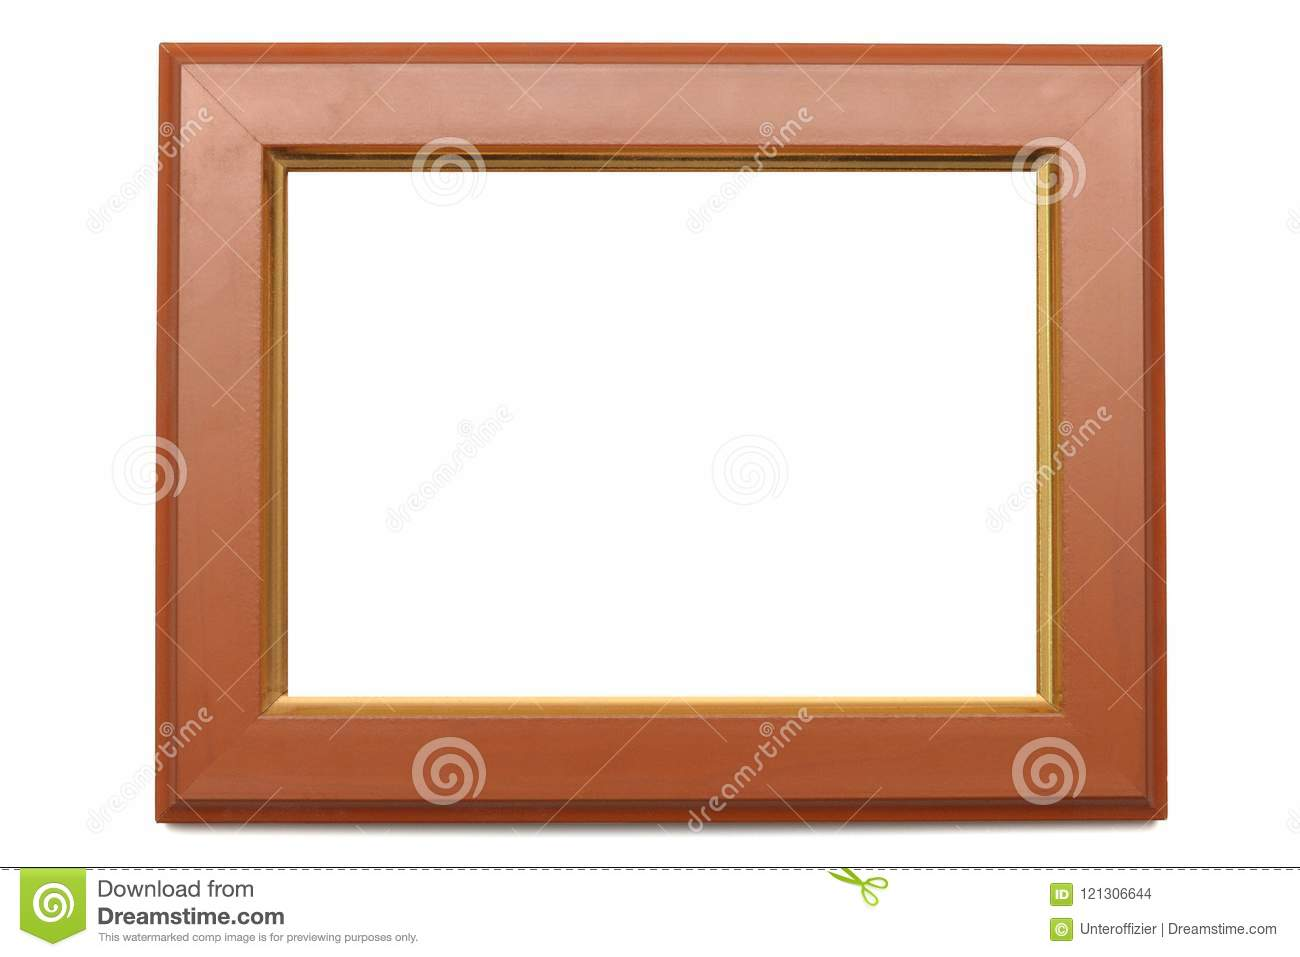 A rectangular shaped photo frame with edges of made of wood.